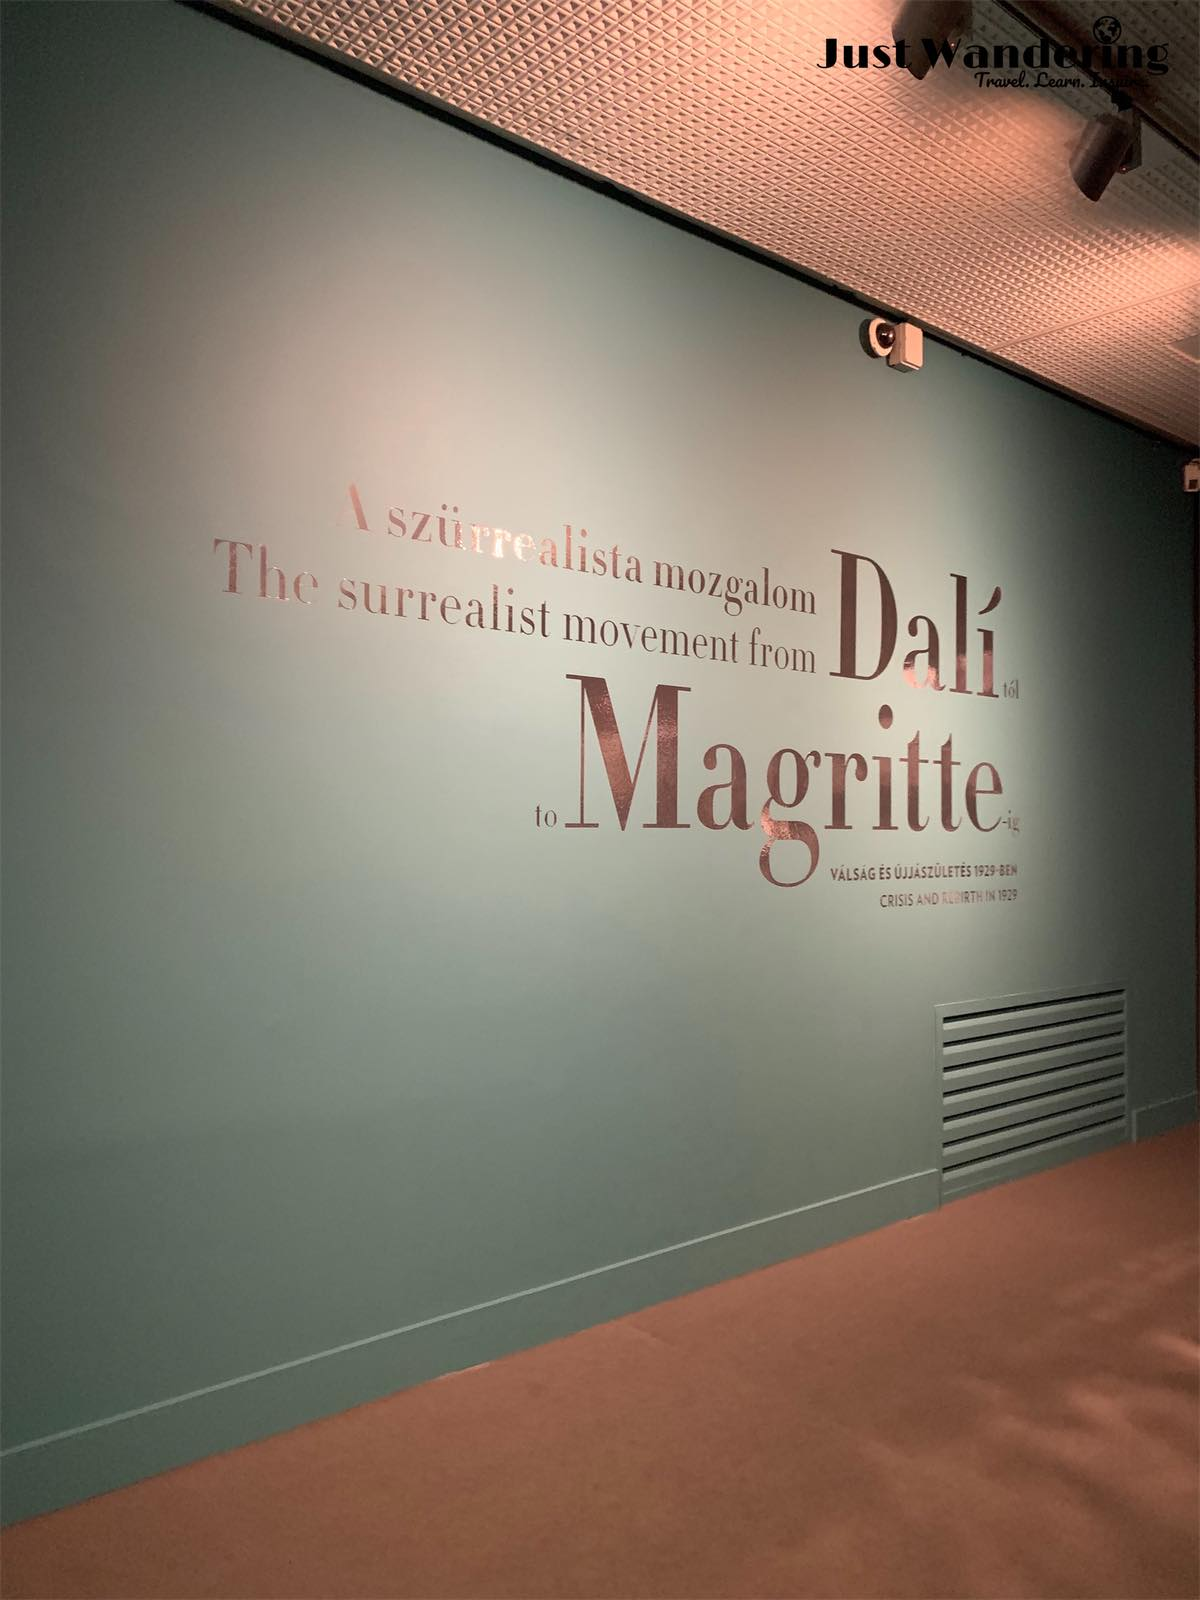 - Cognizant of time, but a big fan of Dali, I opted for a brief stroll through the temporary surrealist exhibit taking place at the museum instead.